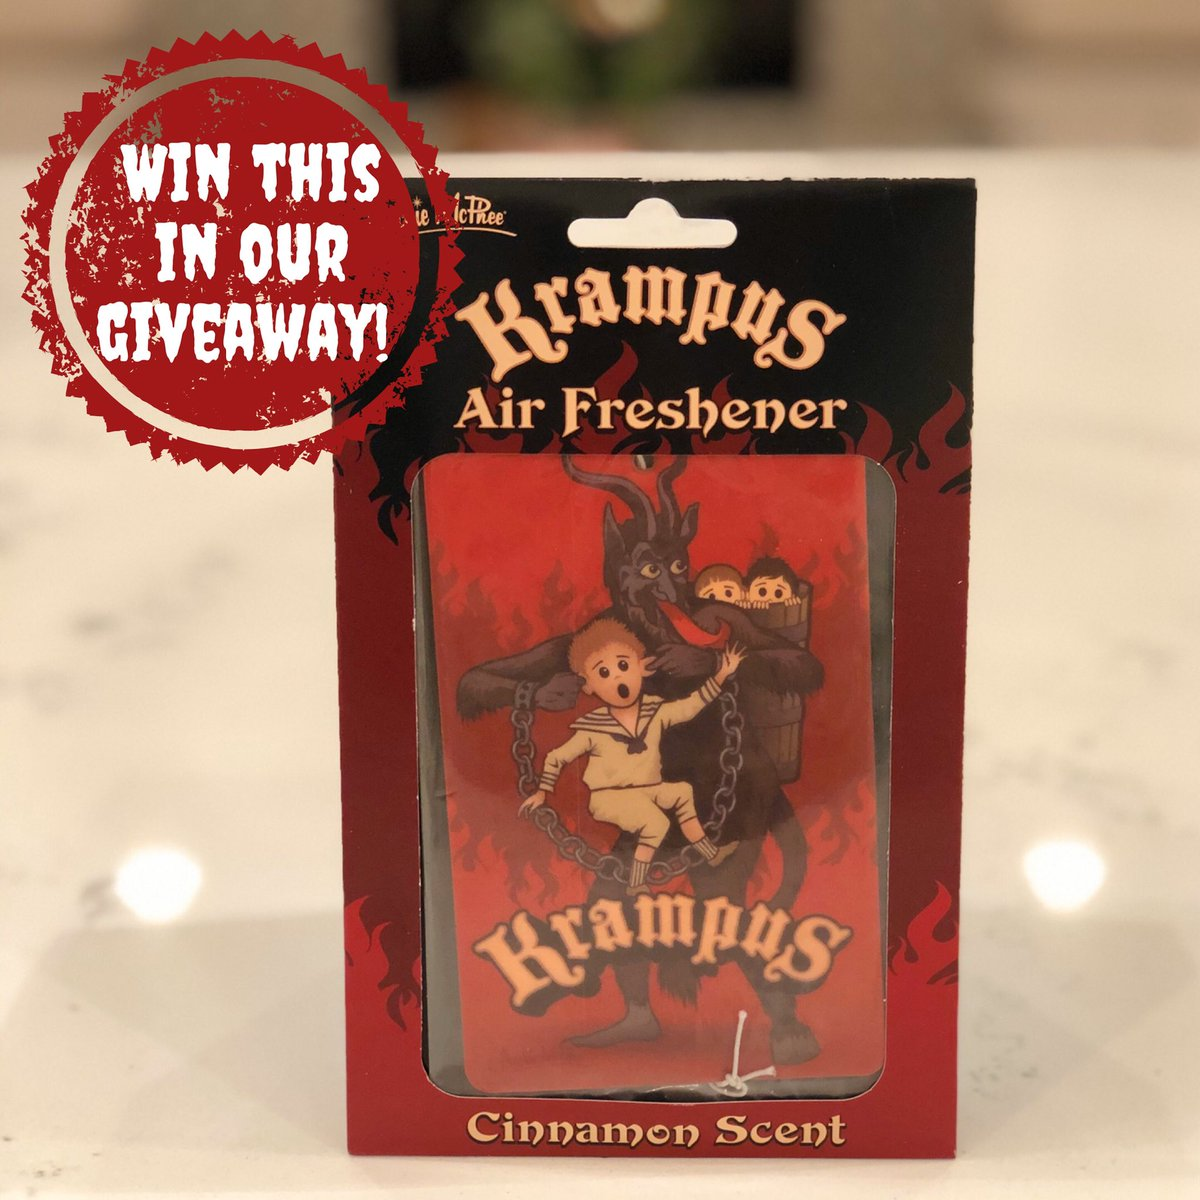 Our #giveaway  contest ends TOMORROW!! Enter on Instagram for a chance to #WIN #prizes like this cinnamon-scented #Krampus air freshener: https://bit.ly/2YUjLNI . #podcast #winit #ladypodsquadpic.twitter.com/COIiR8S4TP